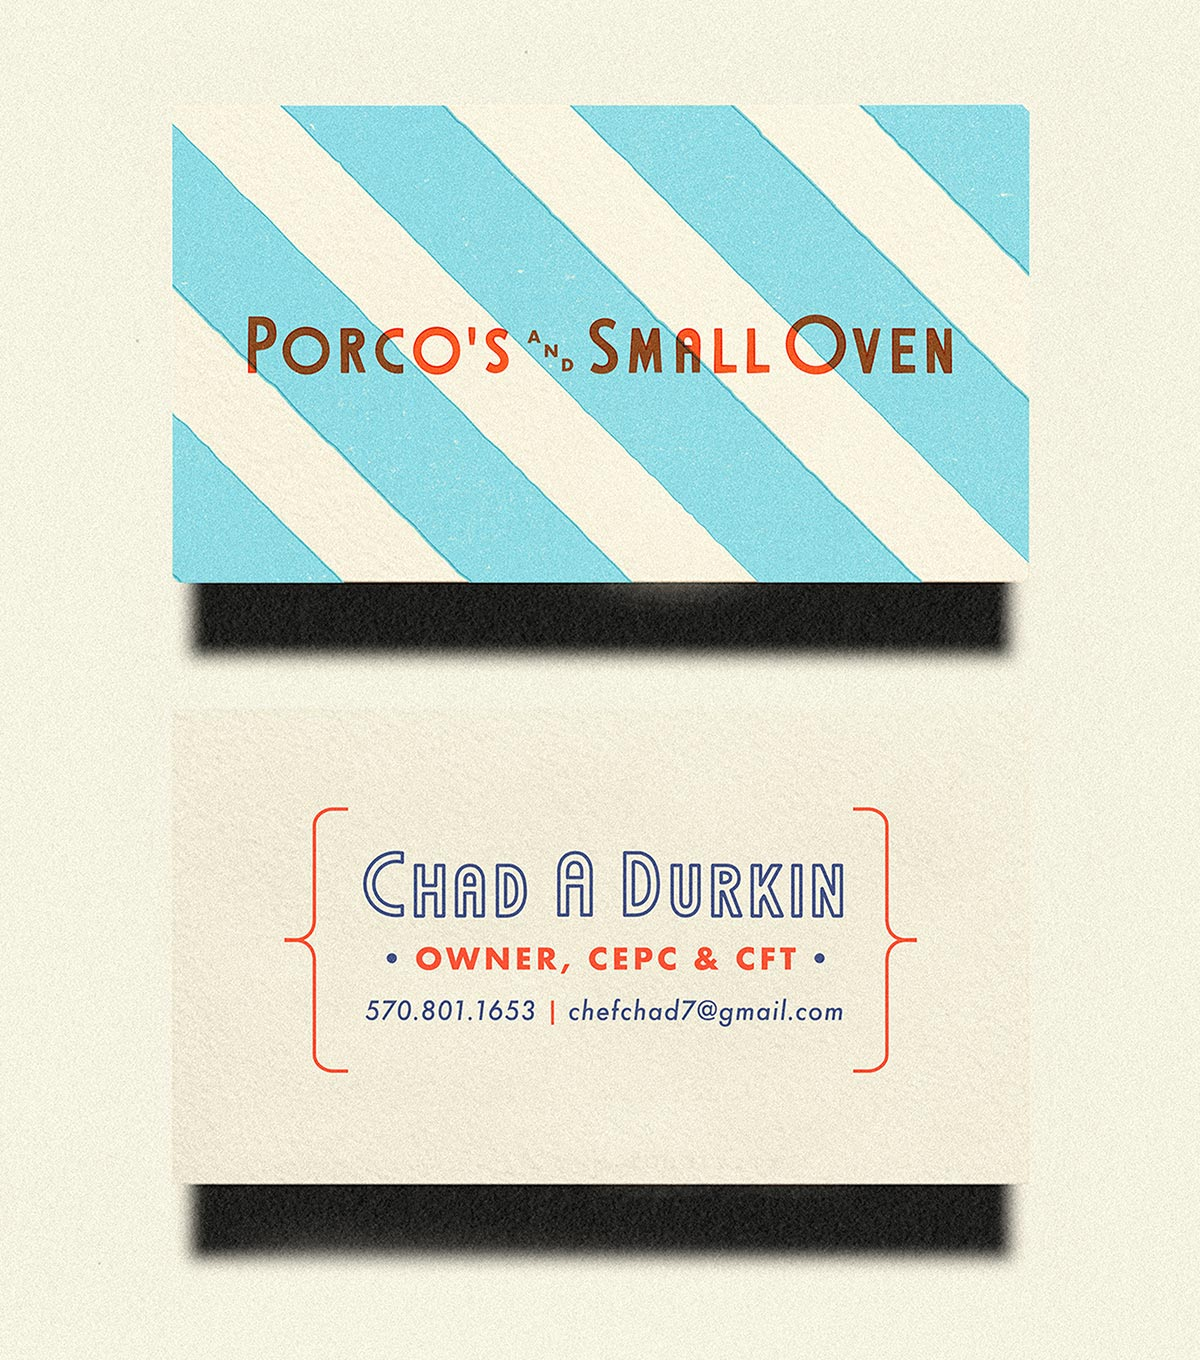 MGS_Porcos_Casestudy_businesscards